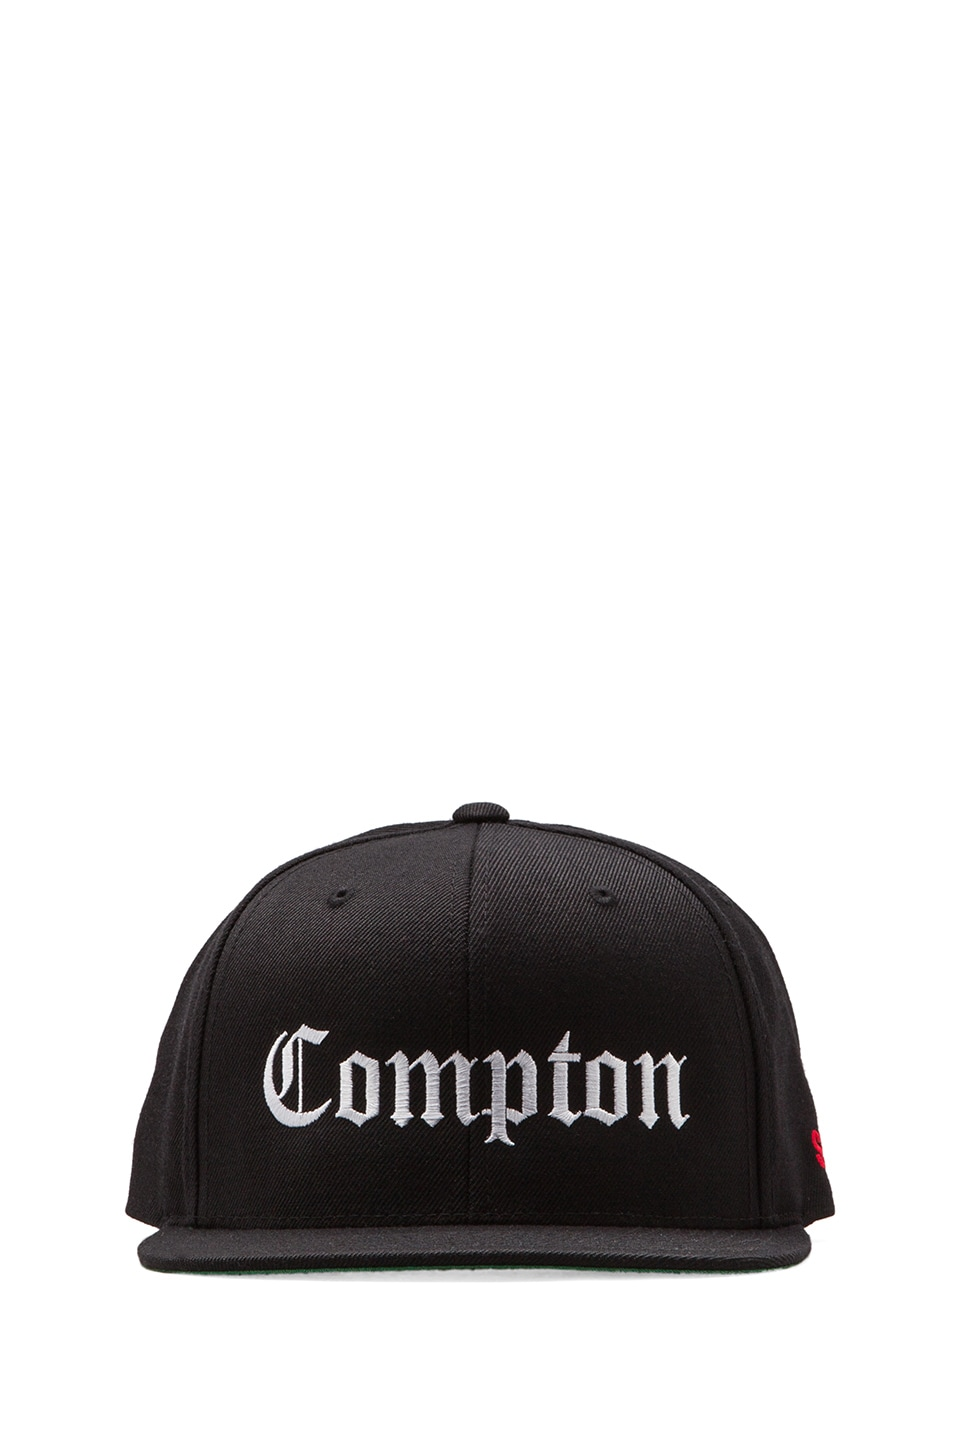 SSUR Compton Snapback in Black/White